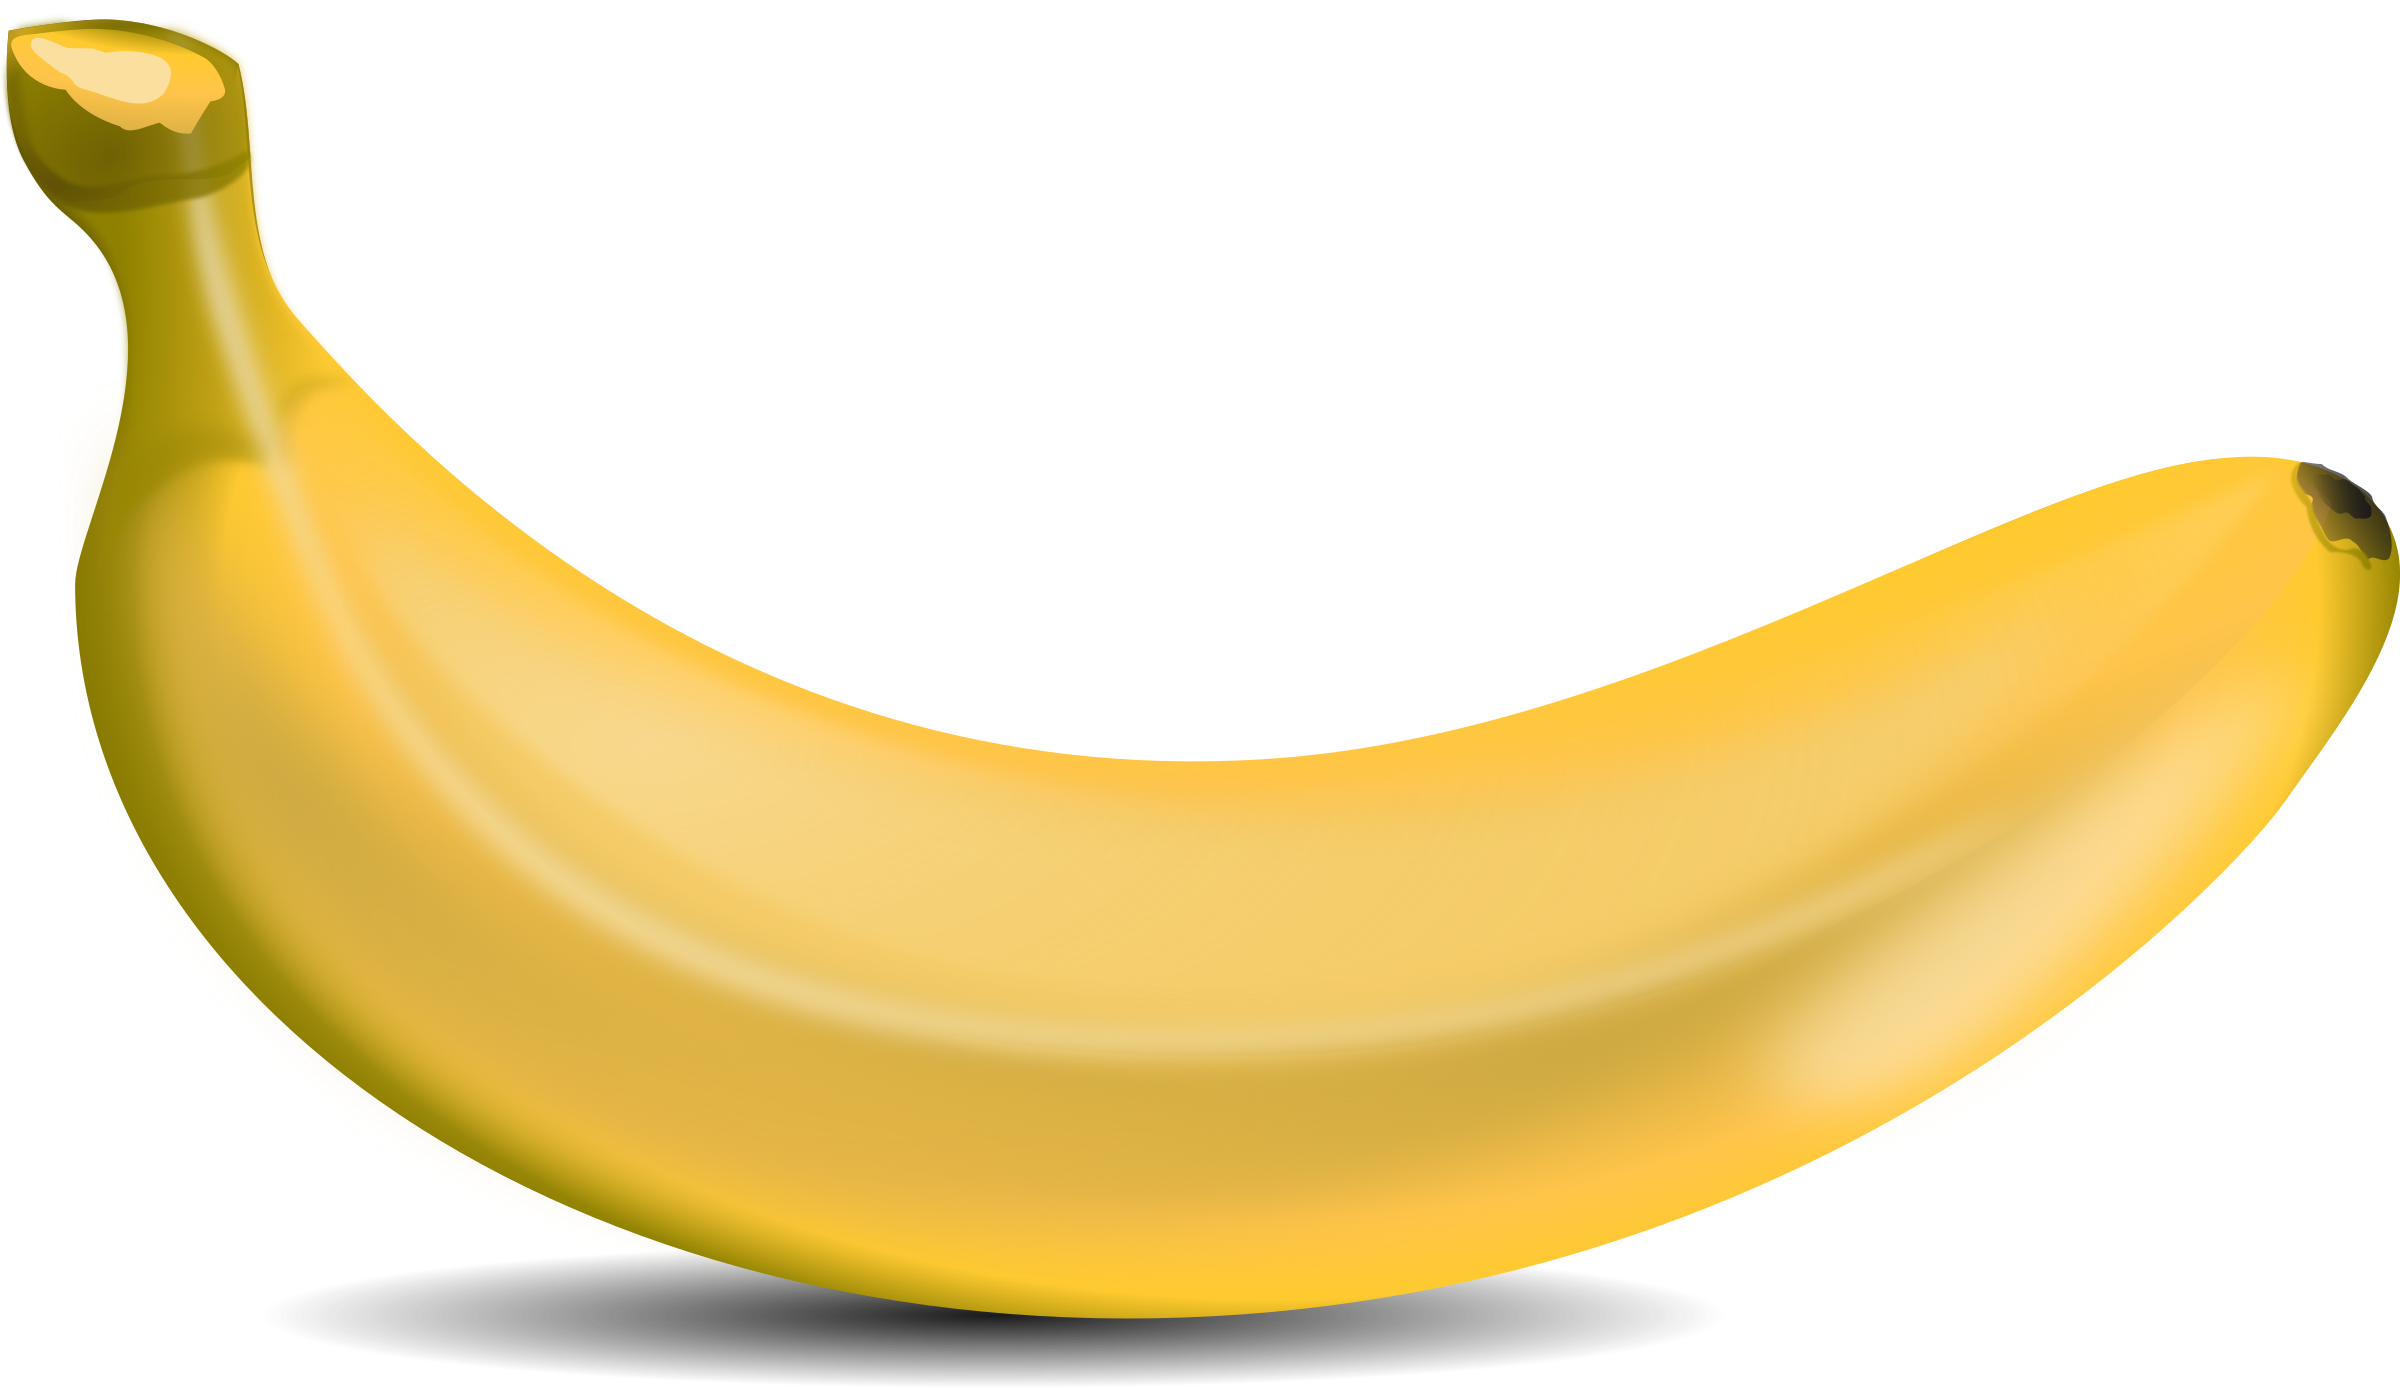 banana  by Keistutis